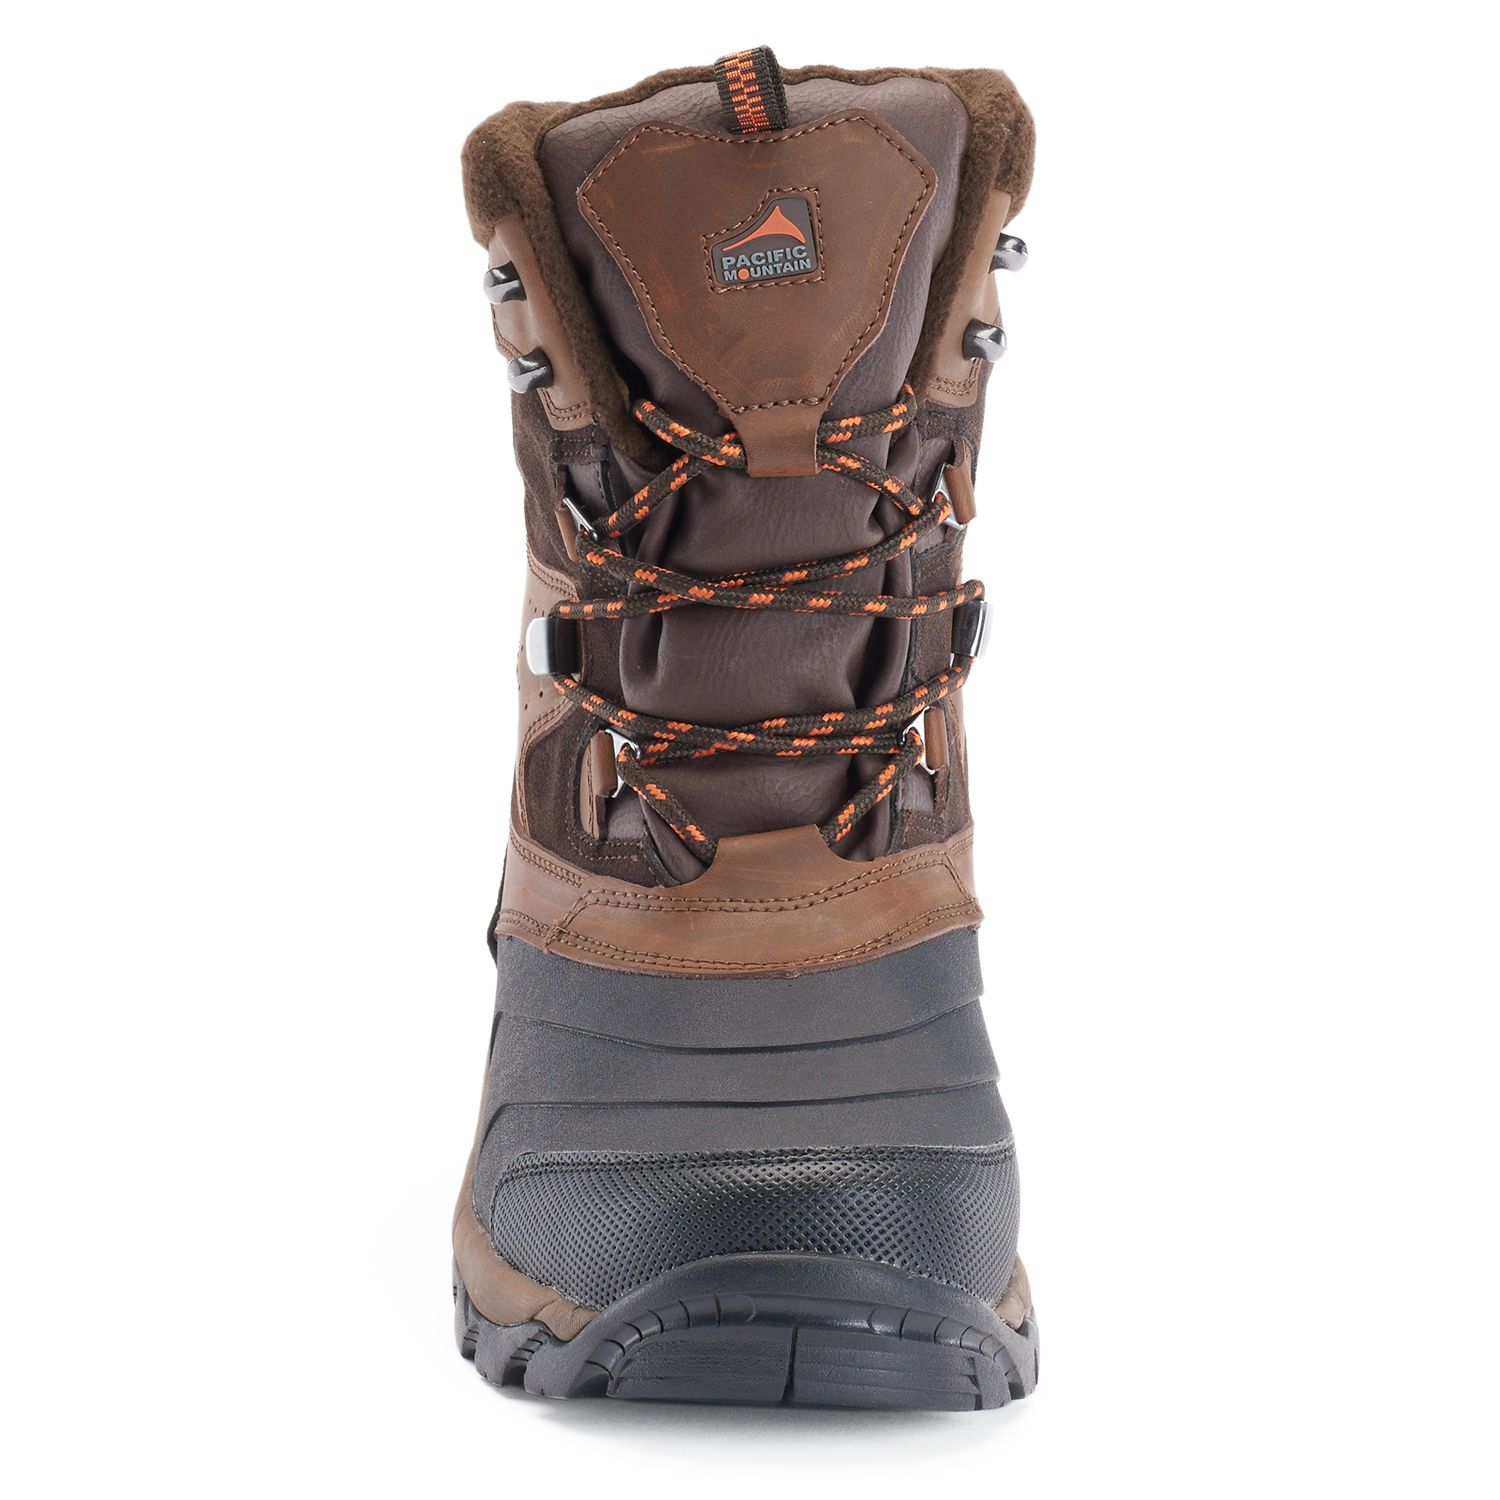 72be2f6887f Pacific Mountain Boots - Shoes